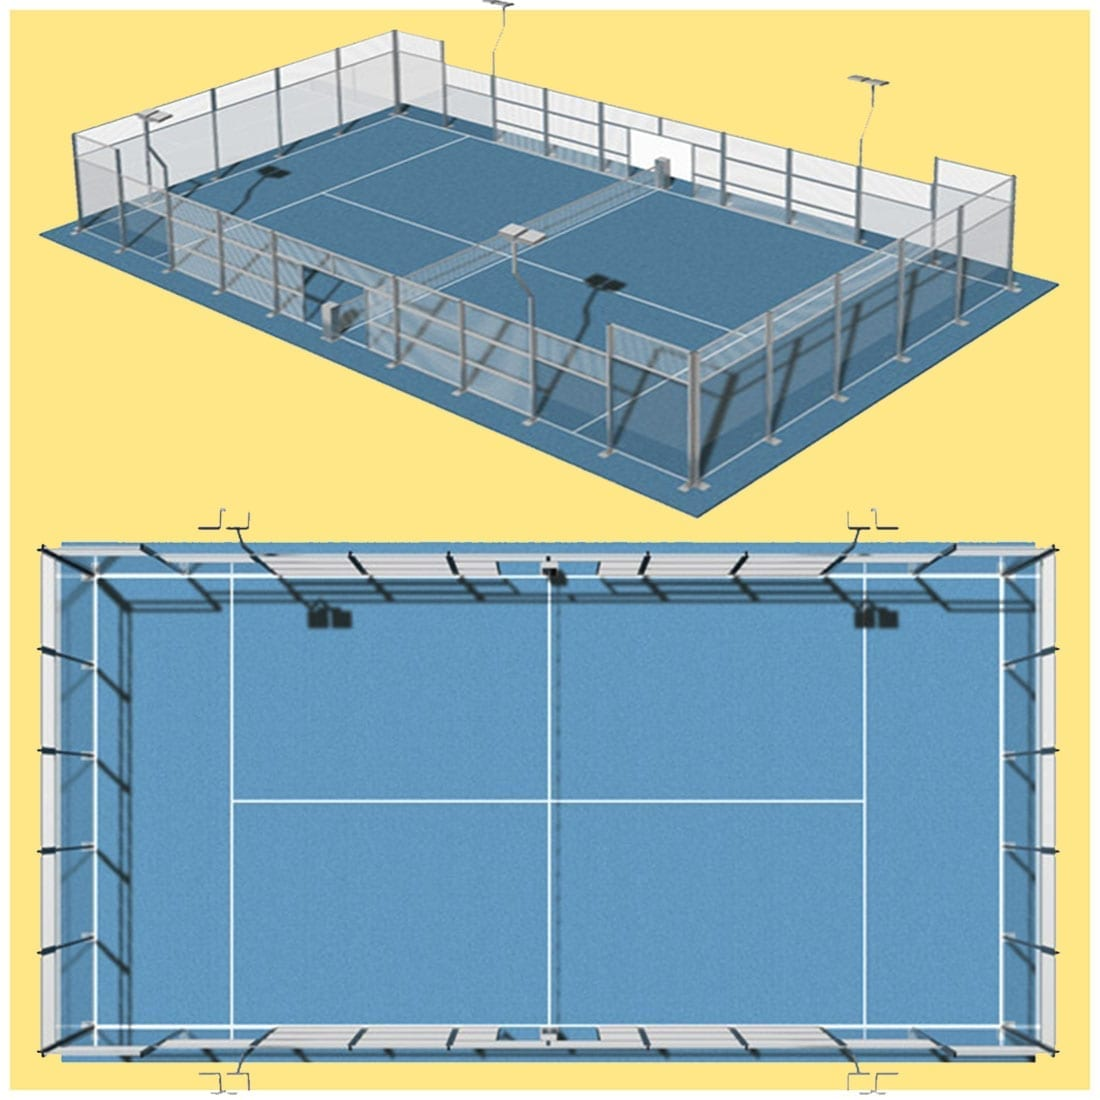 Post: Official Padel Court Dimensions. Your Online Padel Shop, Blog Page on what you really want to know concerning Padel/Paddle